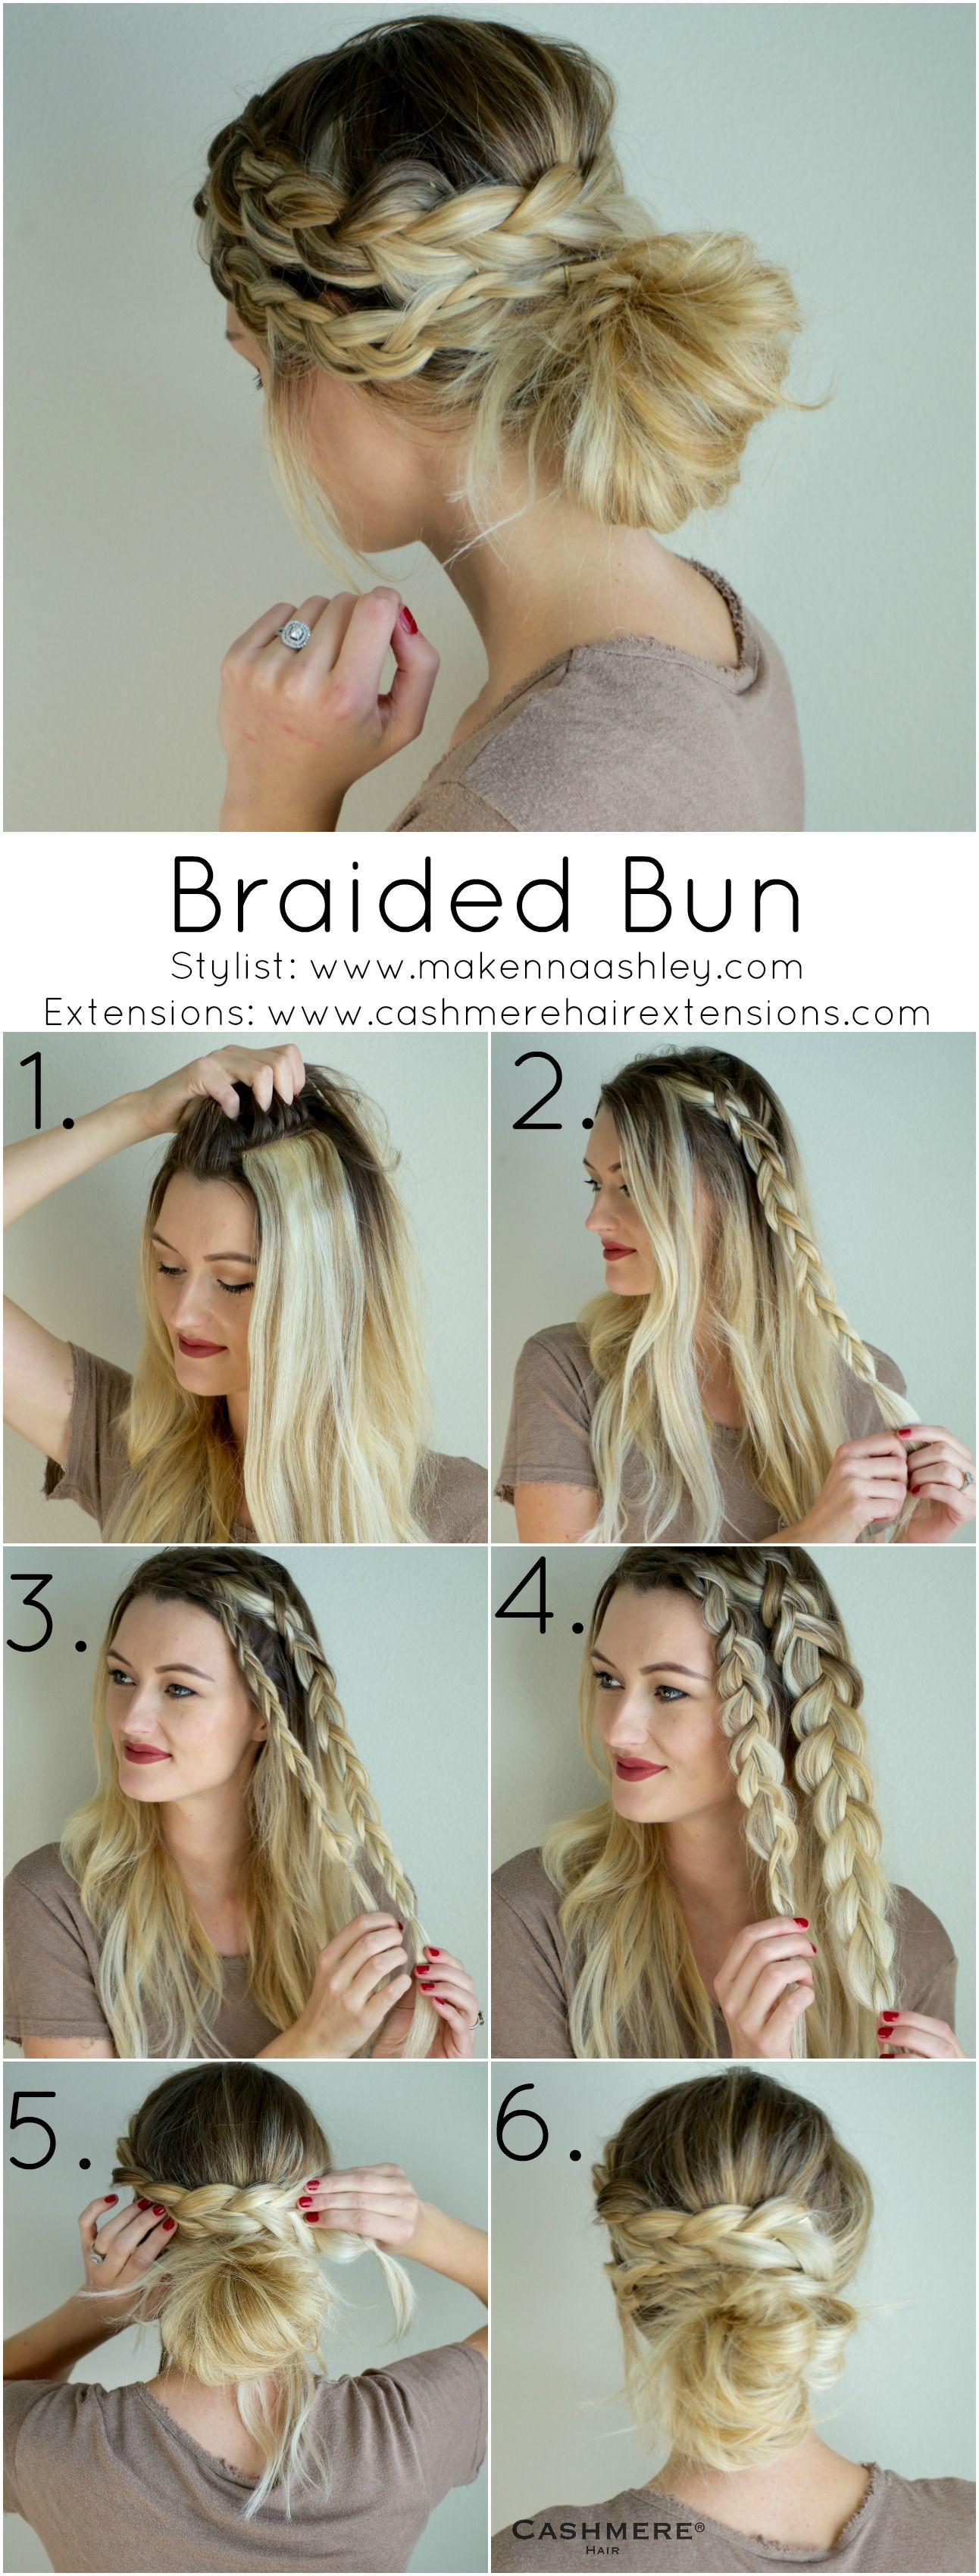 Braided Bun With Clip In Extensions HairBraids101